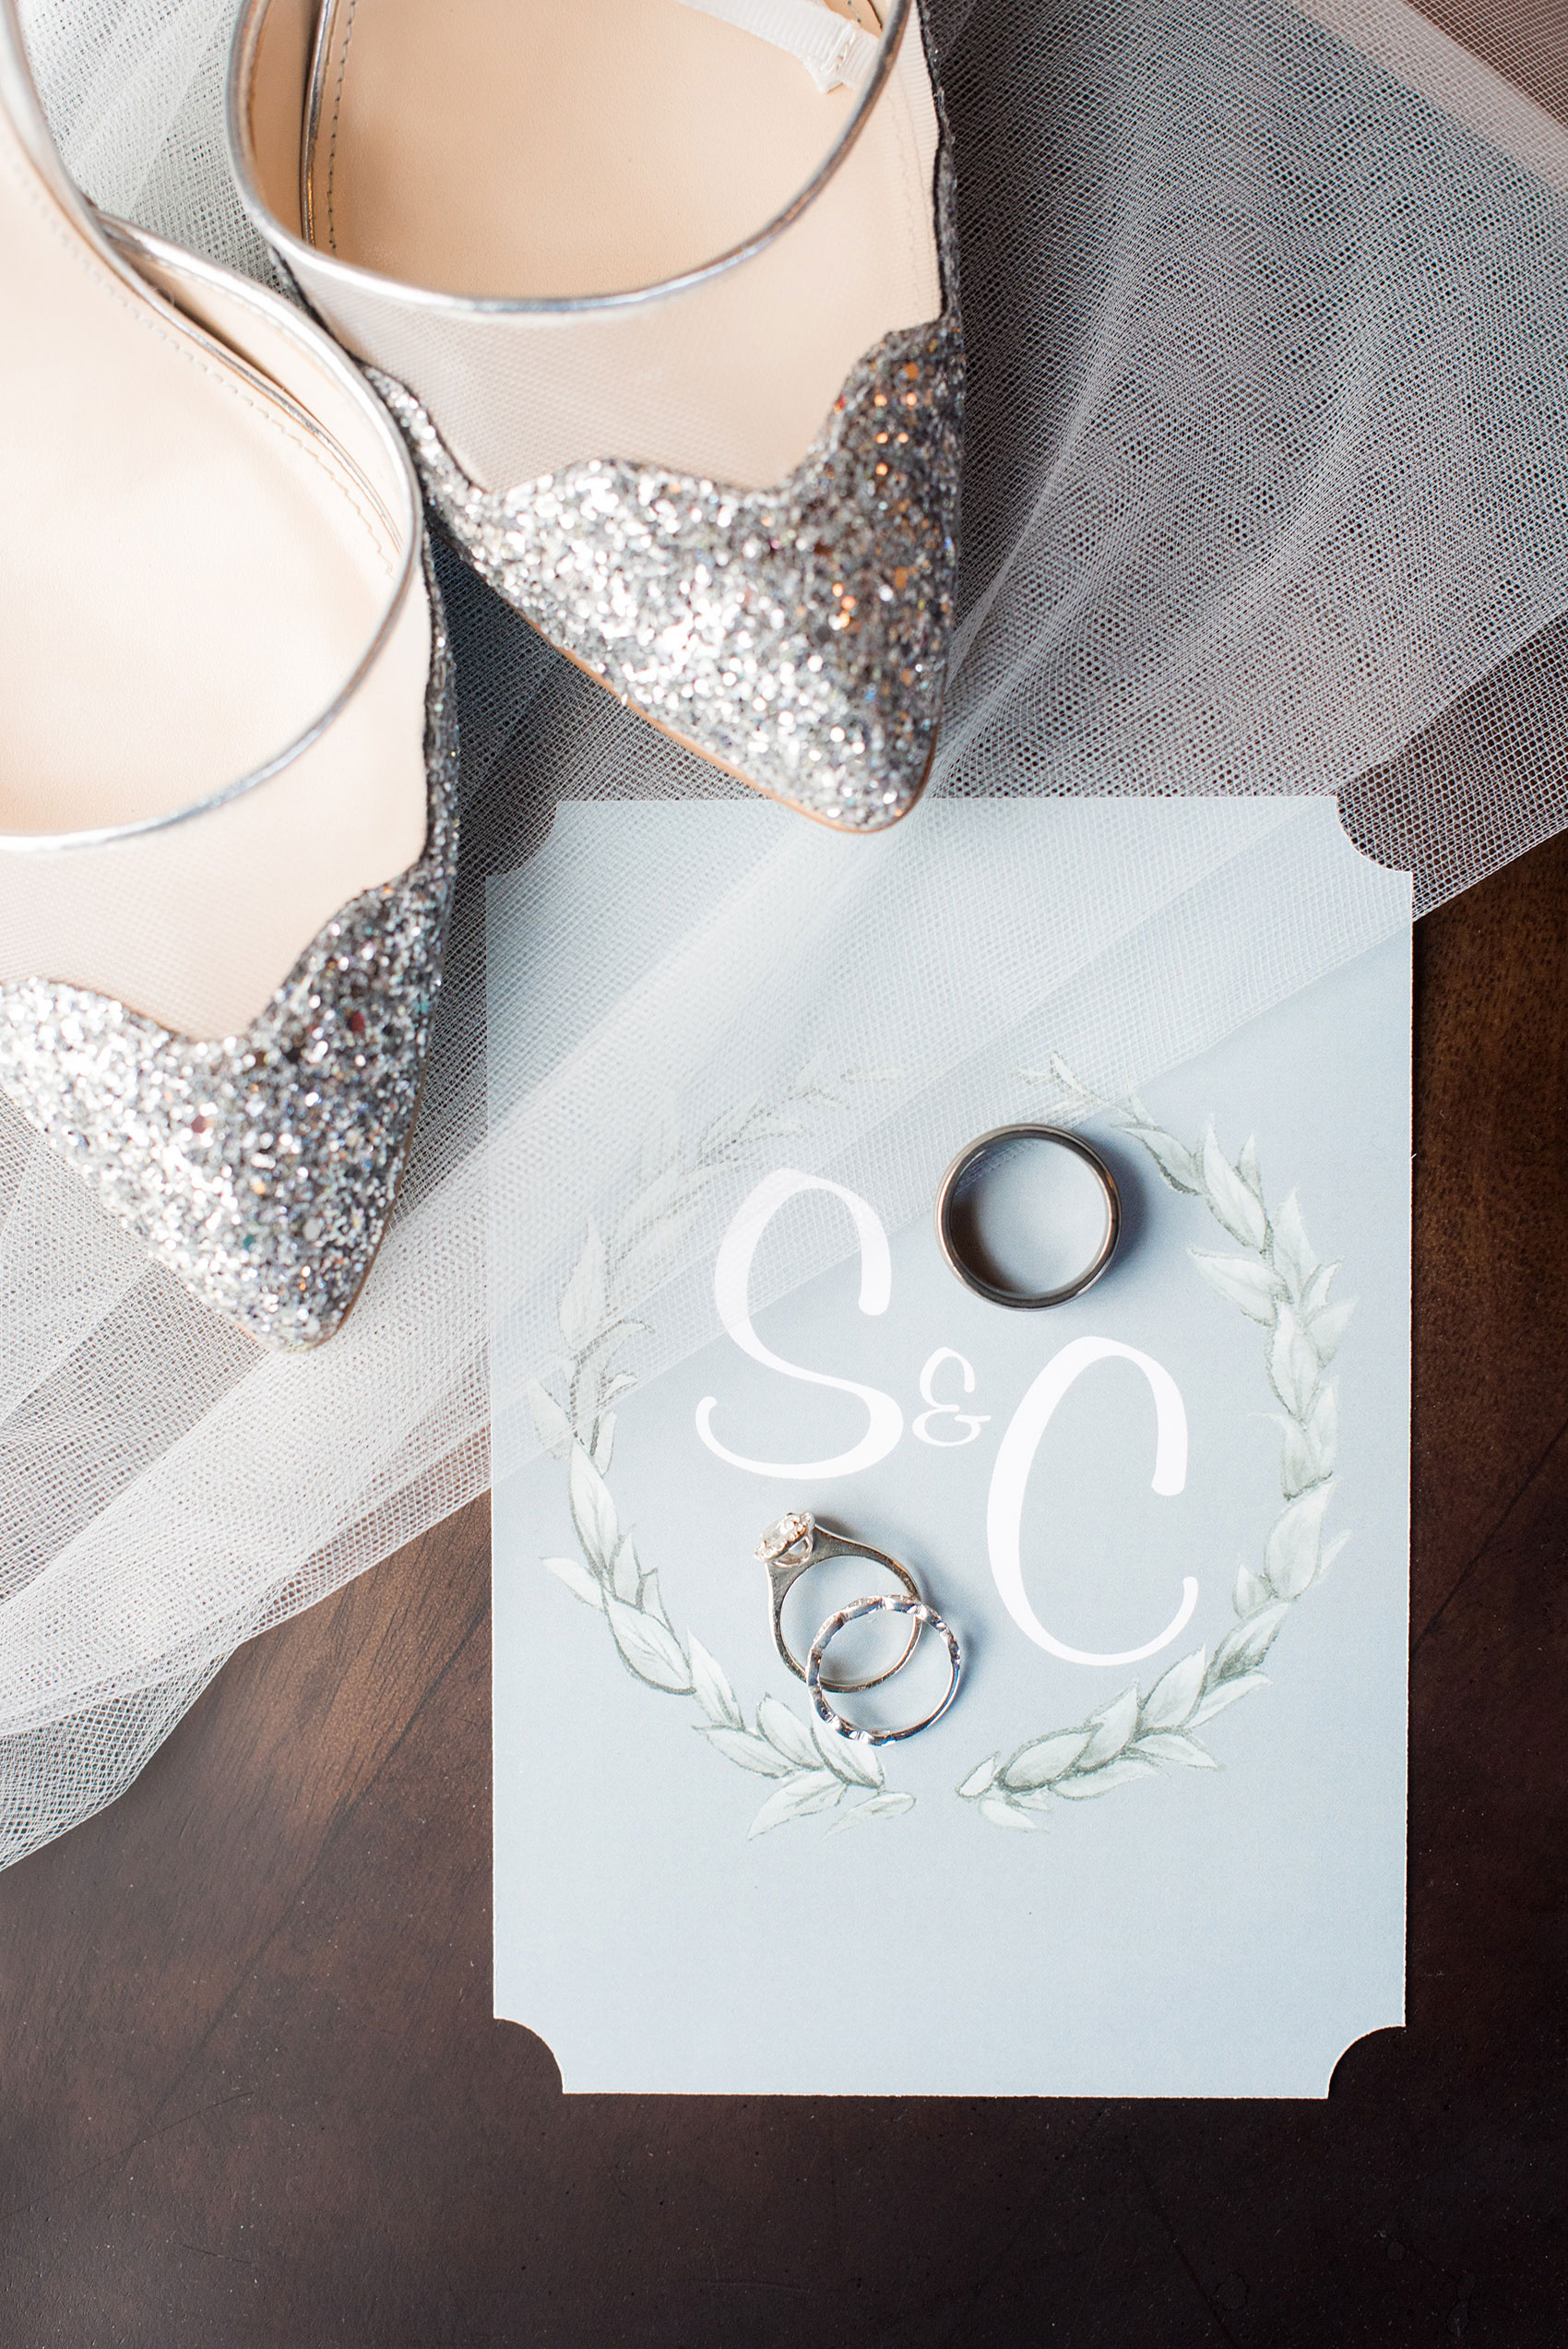 Durham wedding photos at The Cookery by Mikkel Paige Photography in North Carolina. The bride's glitter shoes, couple's rings and monogrammed back of their winter invitation are styled in this detail photo.